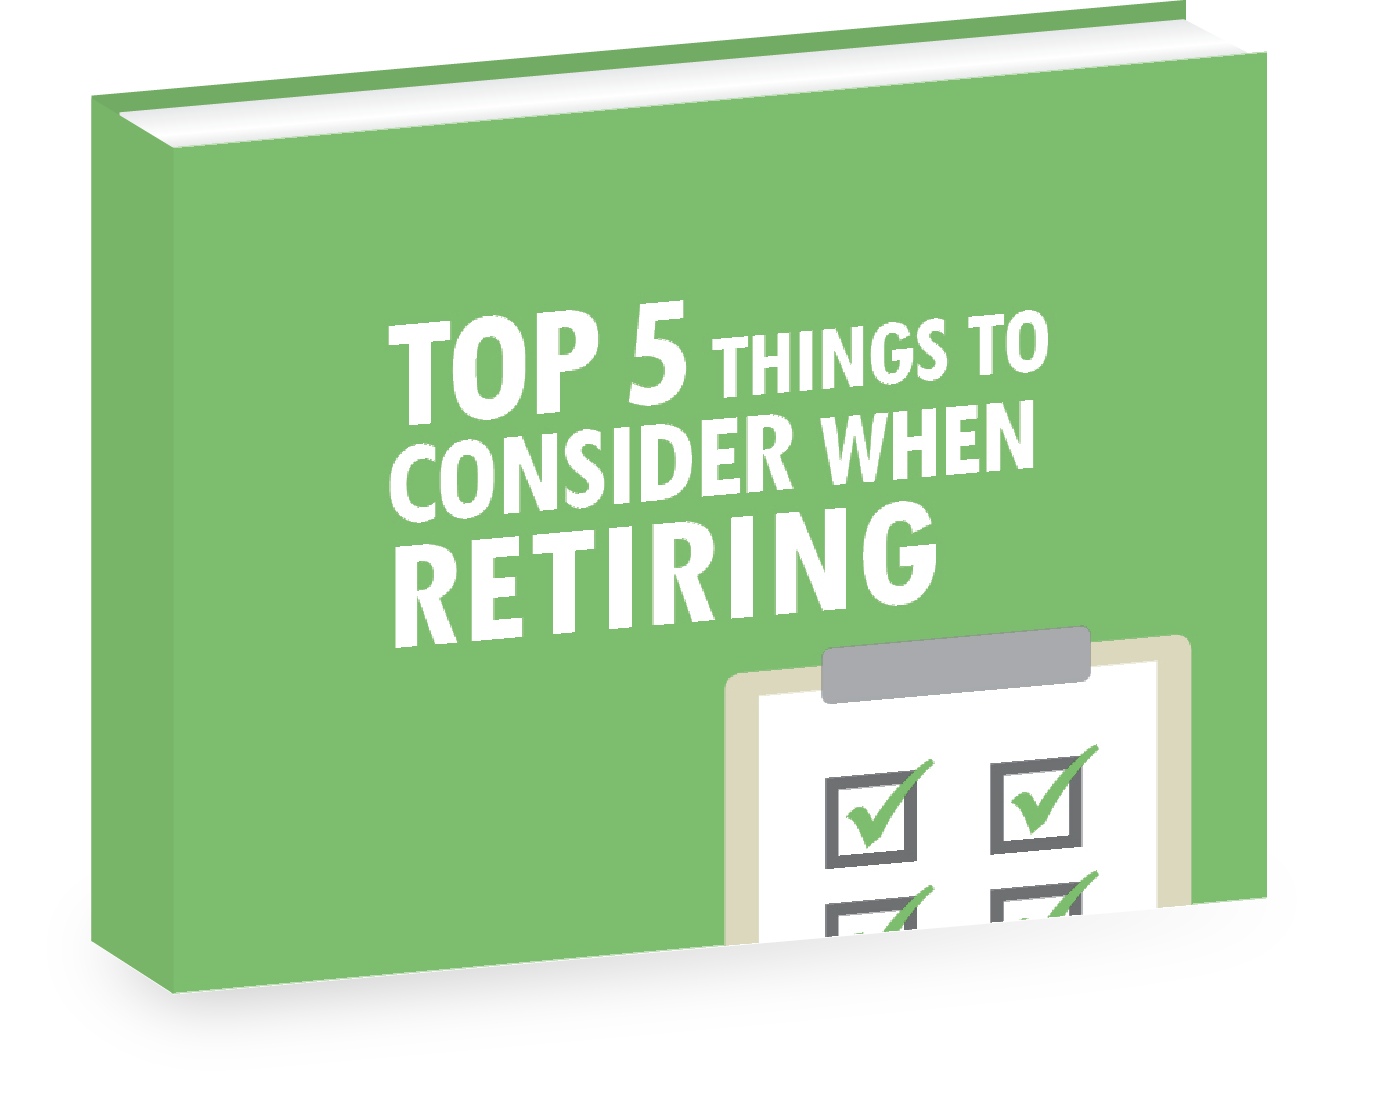 Book_Top_5_things_to_consider_when_retiring.png